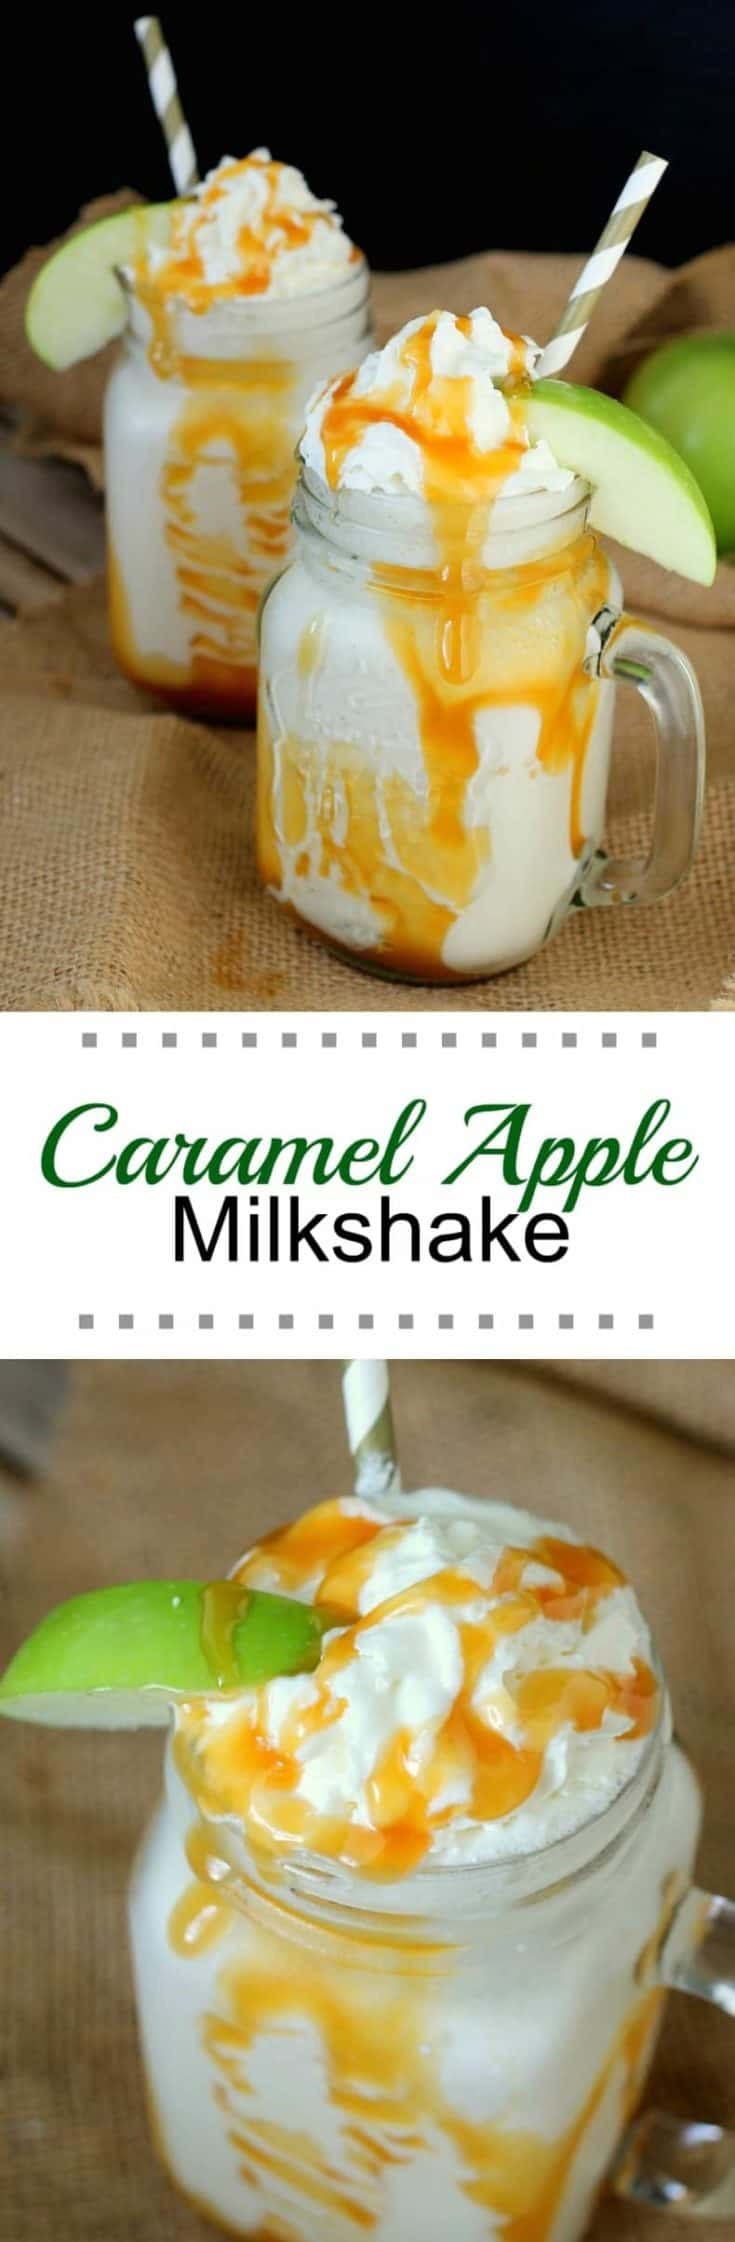 This Caramel Apple Milkshake is perfect for fall season and for fulfilling the need for total comfort food ... milkshakes are so very comforting! #milkshake #milkshakerecipe #caramelapple